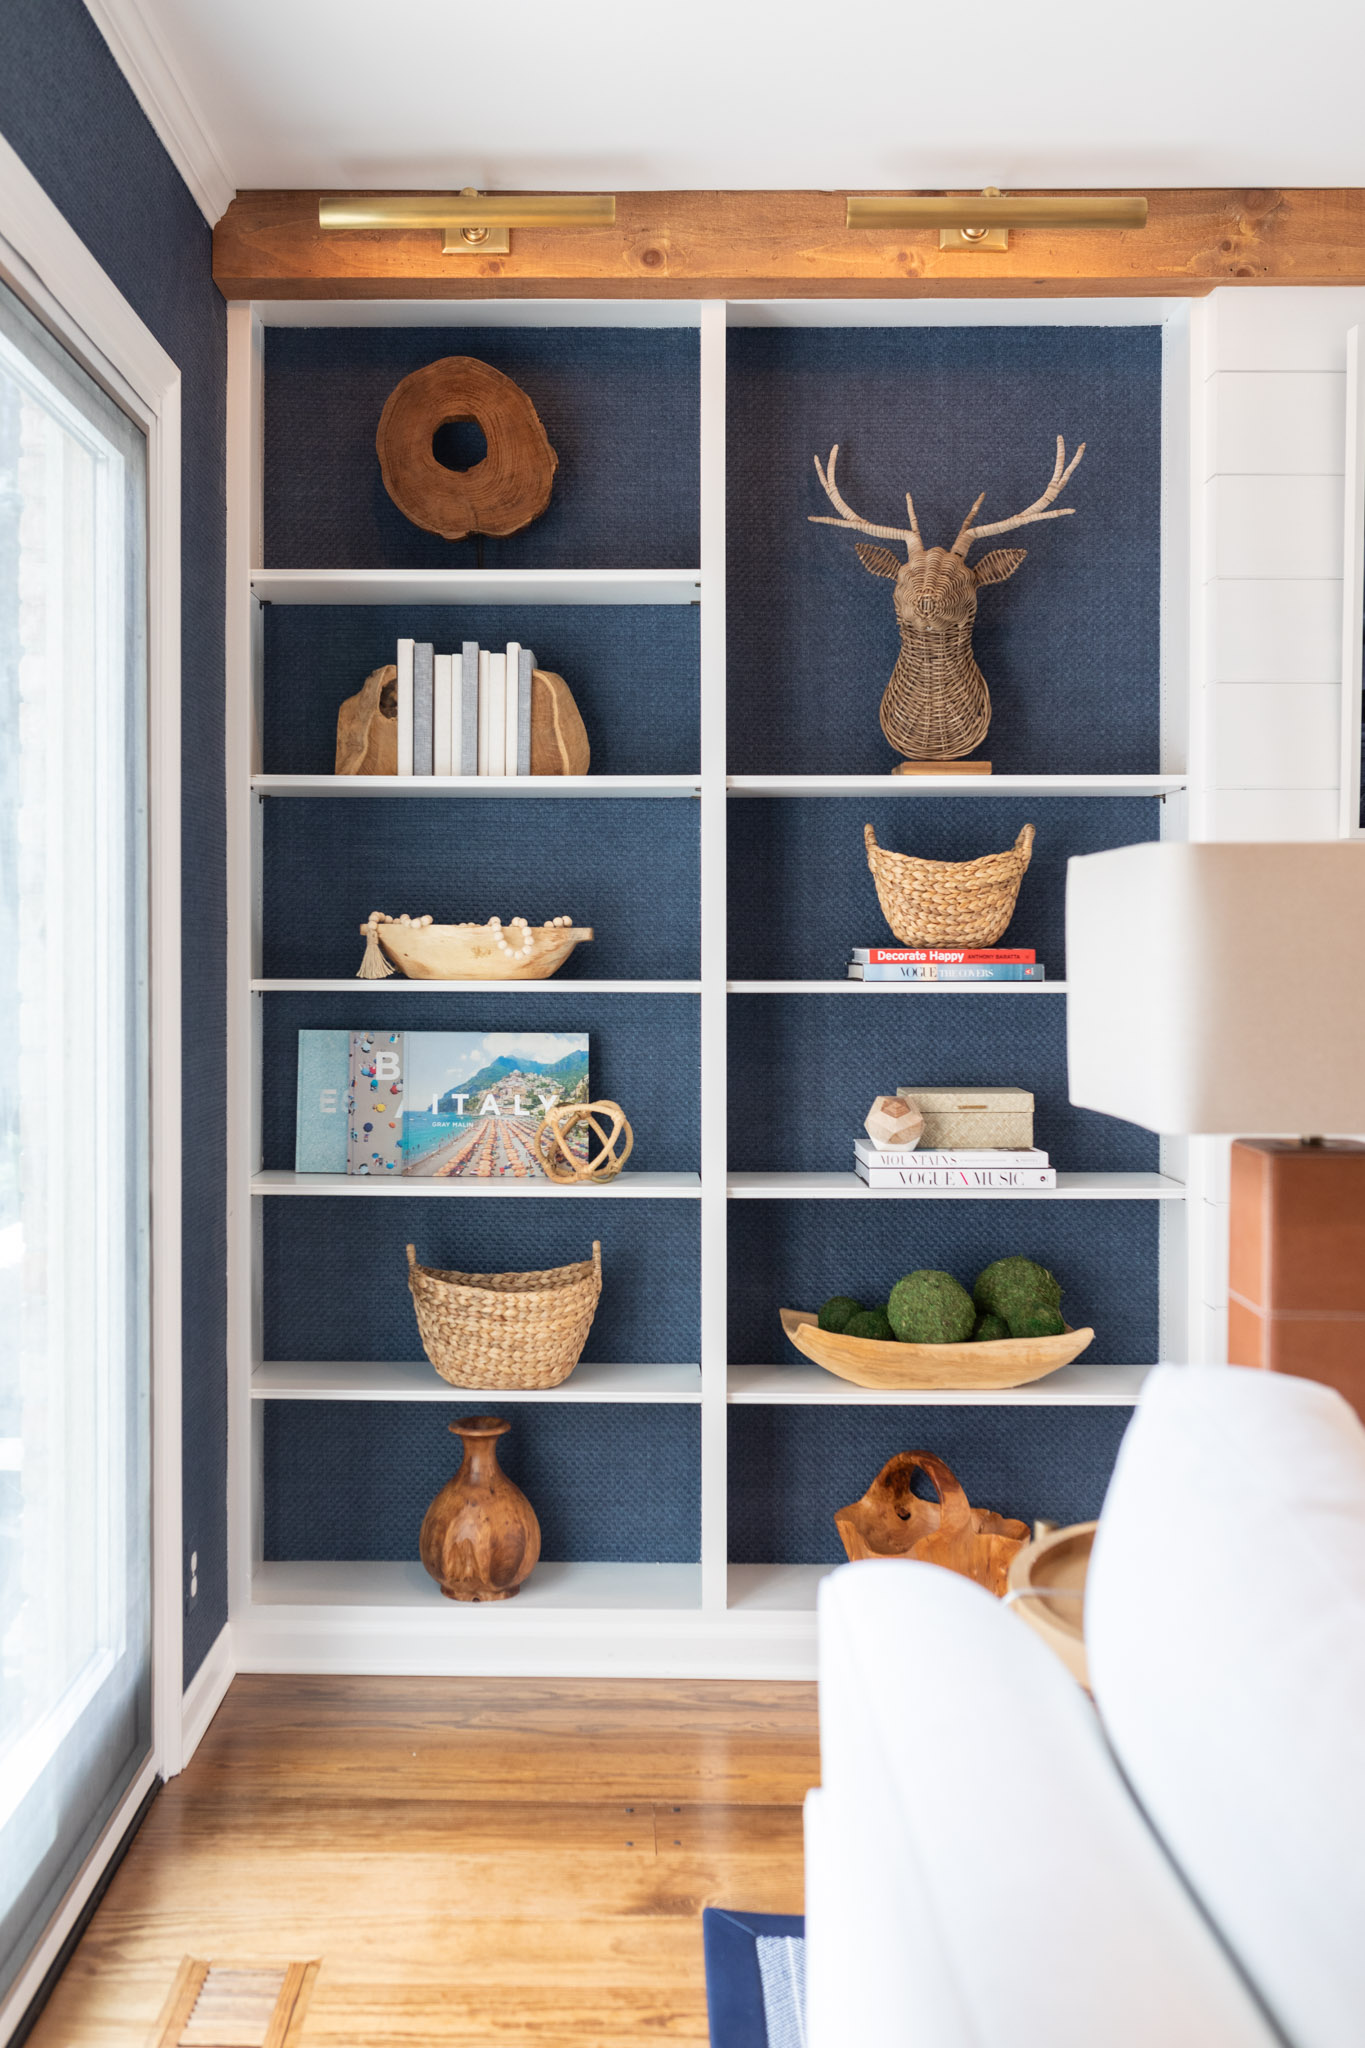 To incorporate texture, the designers of this living room added a blue grass, cloth wallpaper to the walls, that also lines the back of the shelving that are located on either side of the fireplace.